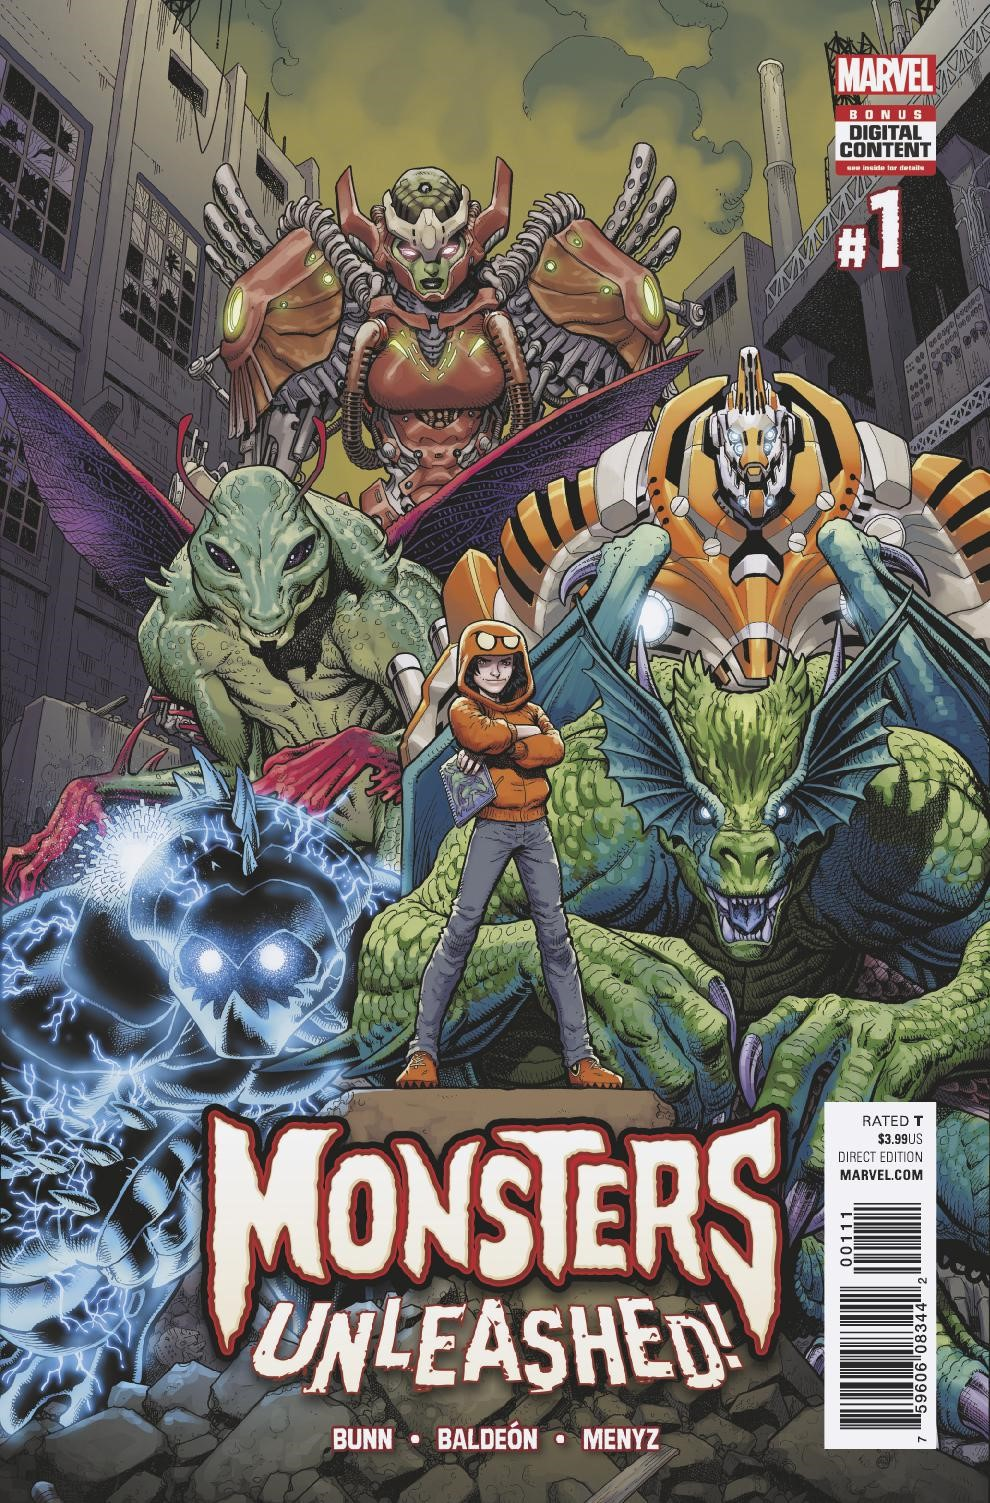 Meet Marvel's Newest Heroes – Your First Look at MONSTERS UNLEASHED #1!